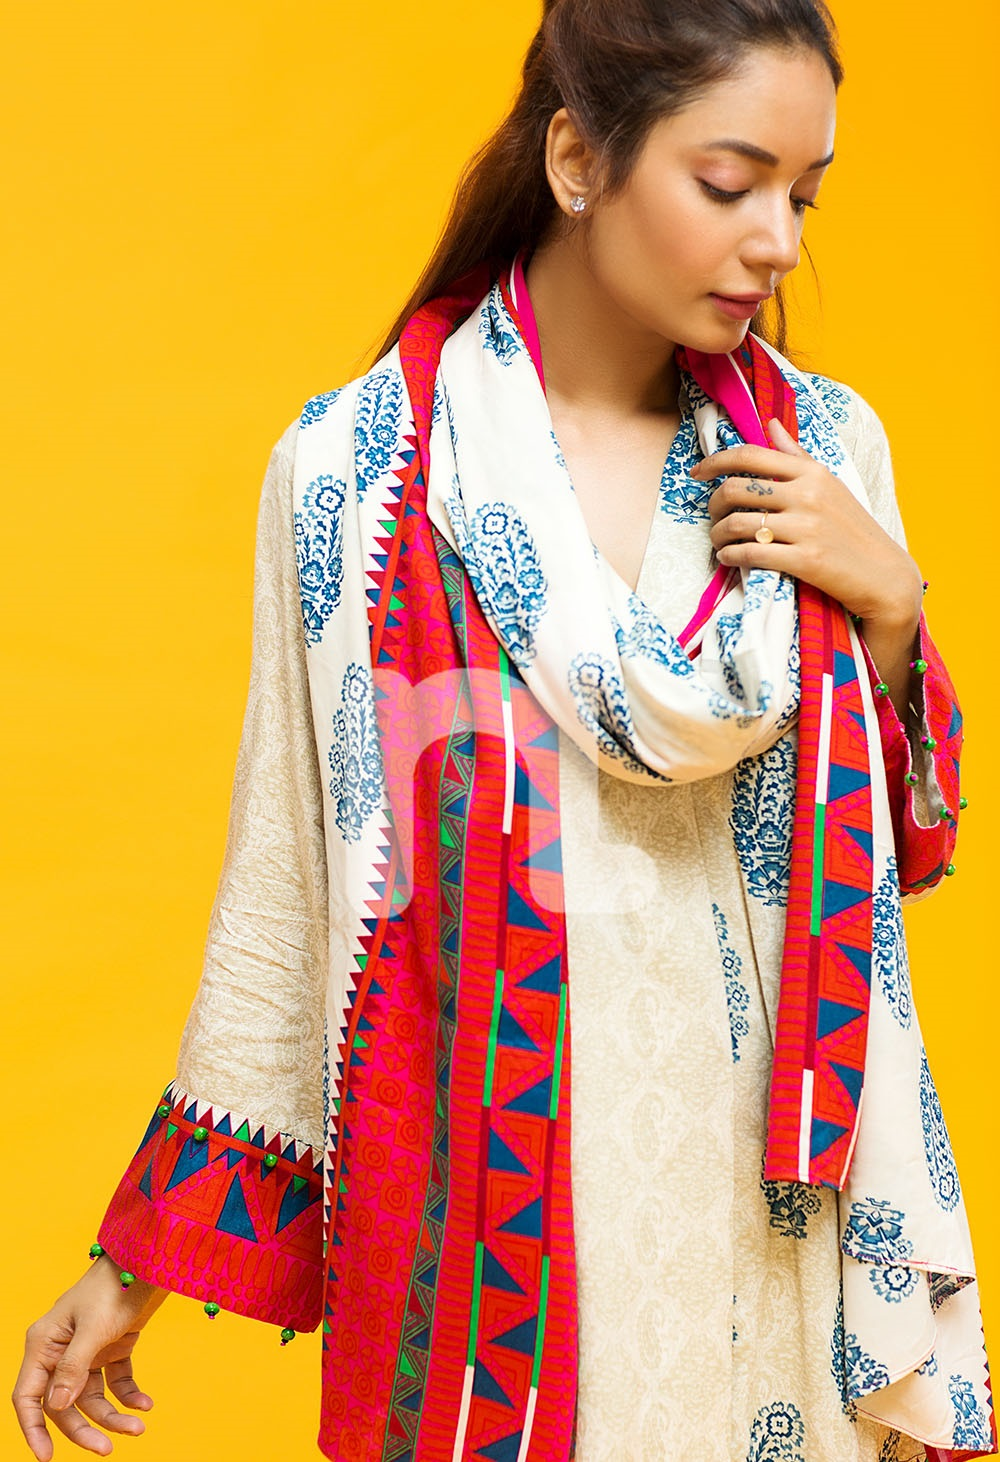 off-white linen shirt with red shawl by Nishat